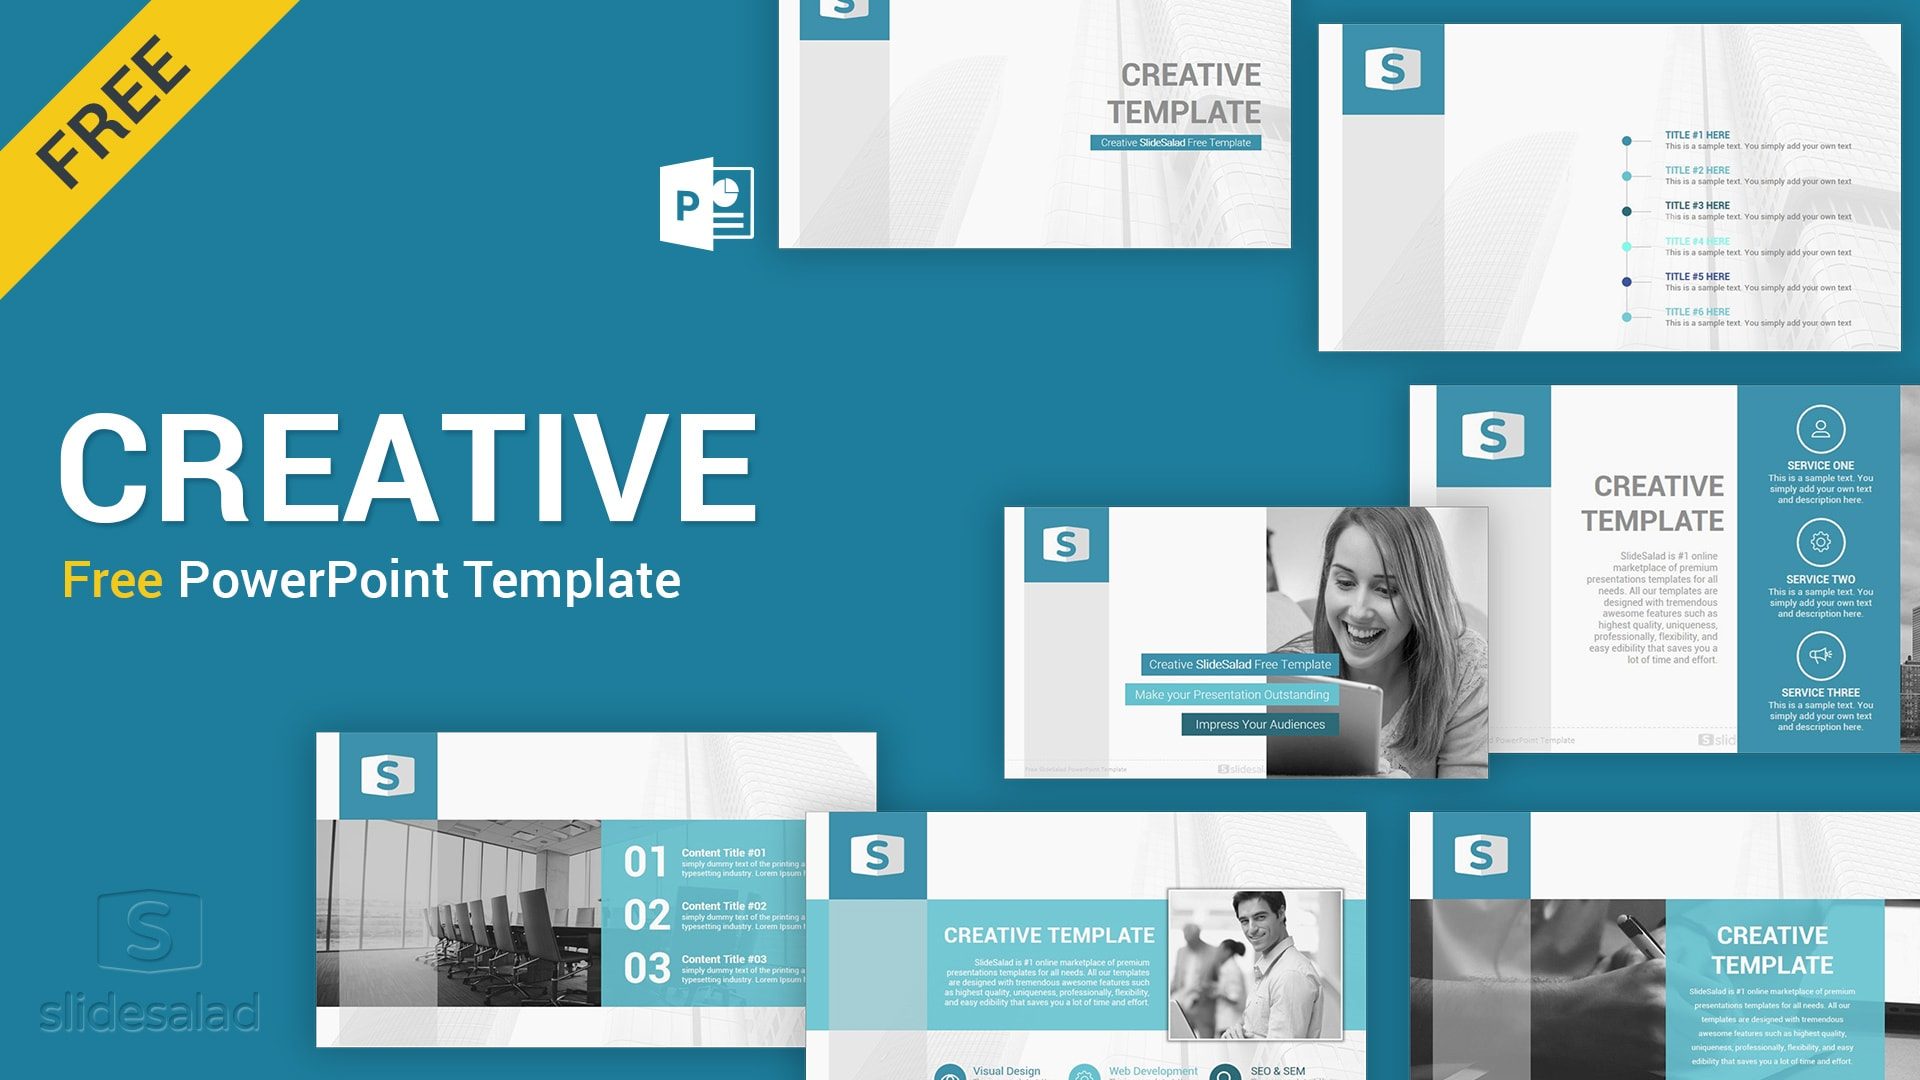 creative free download powerpoint template